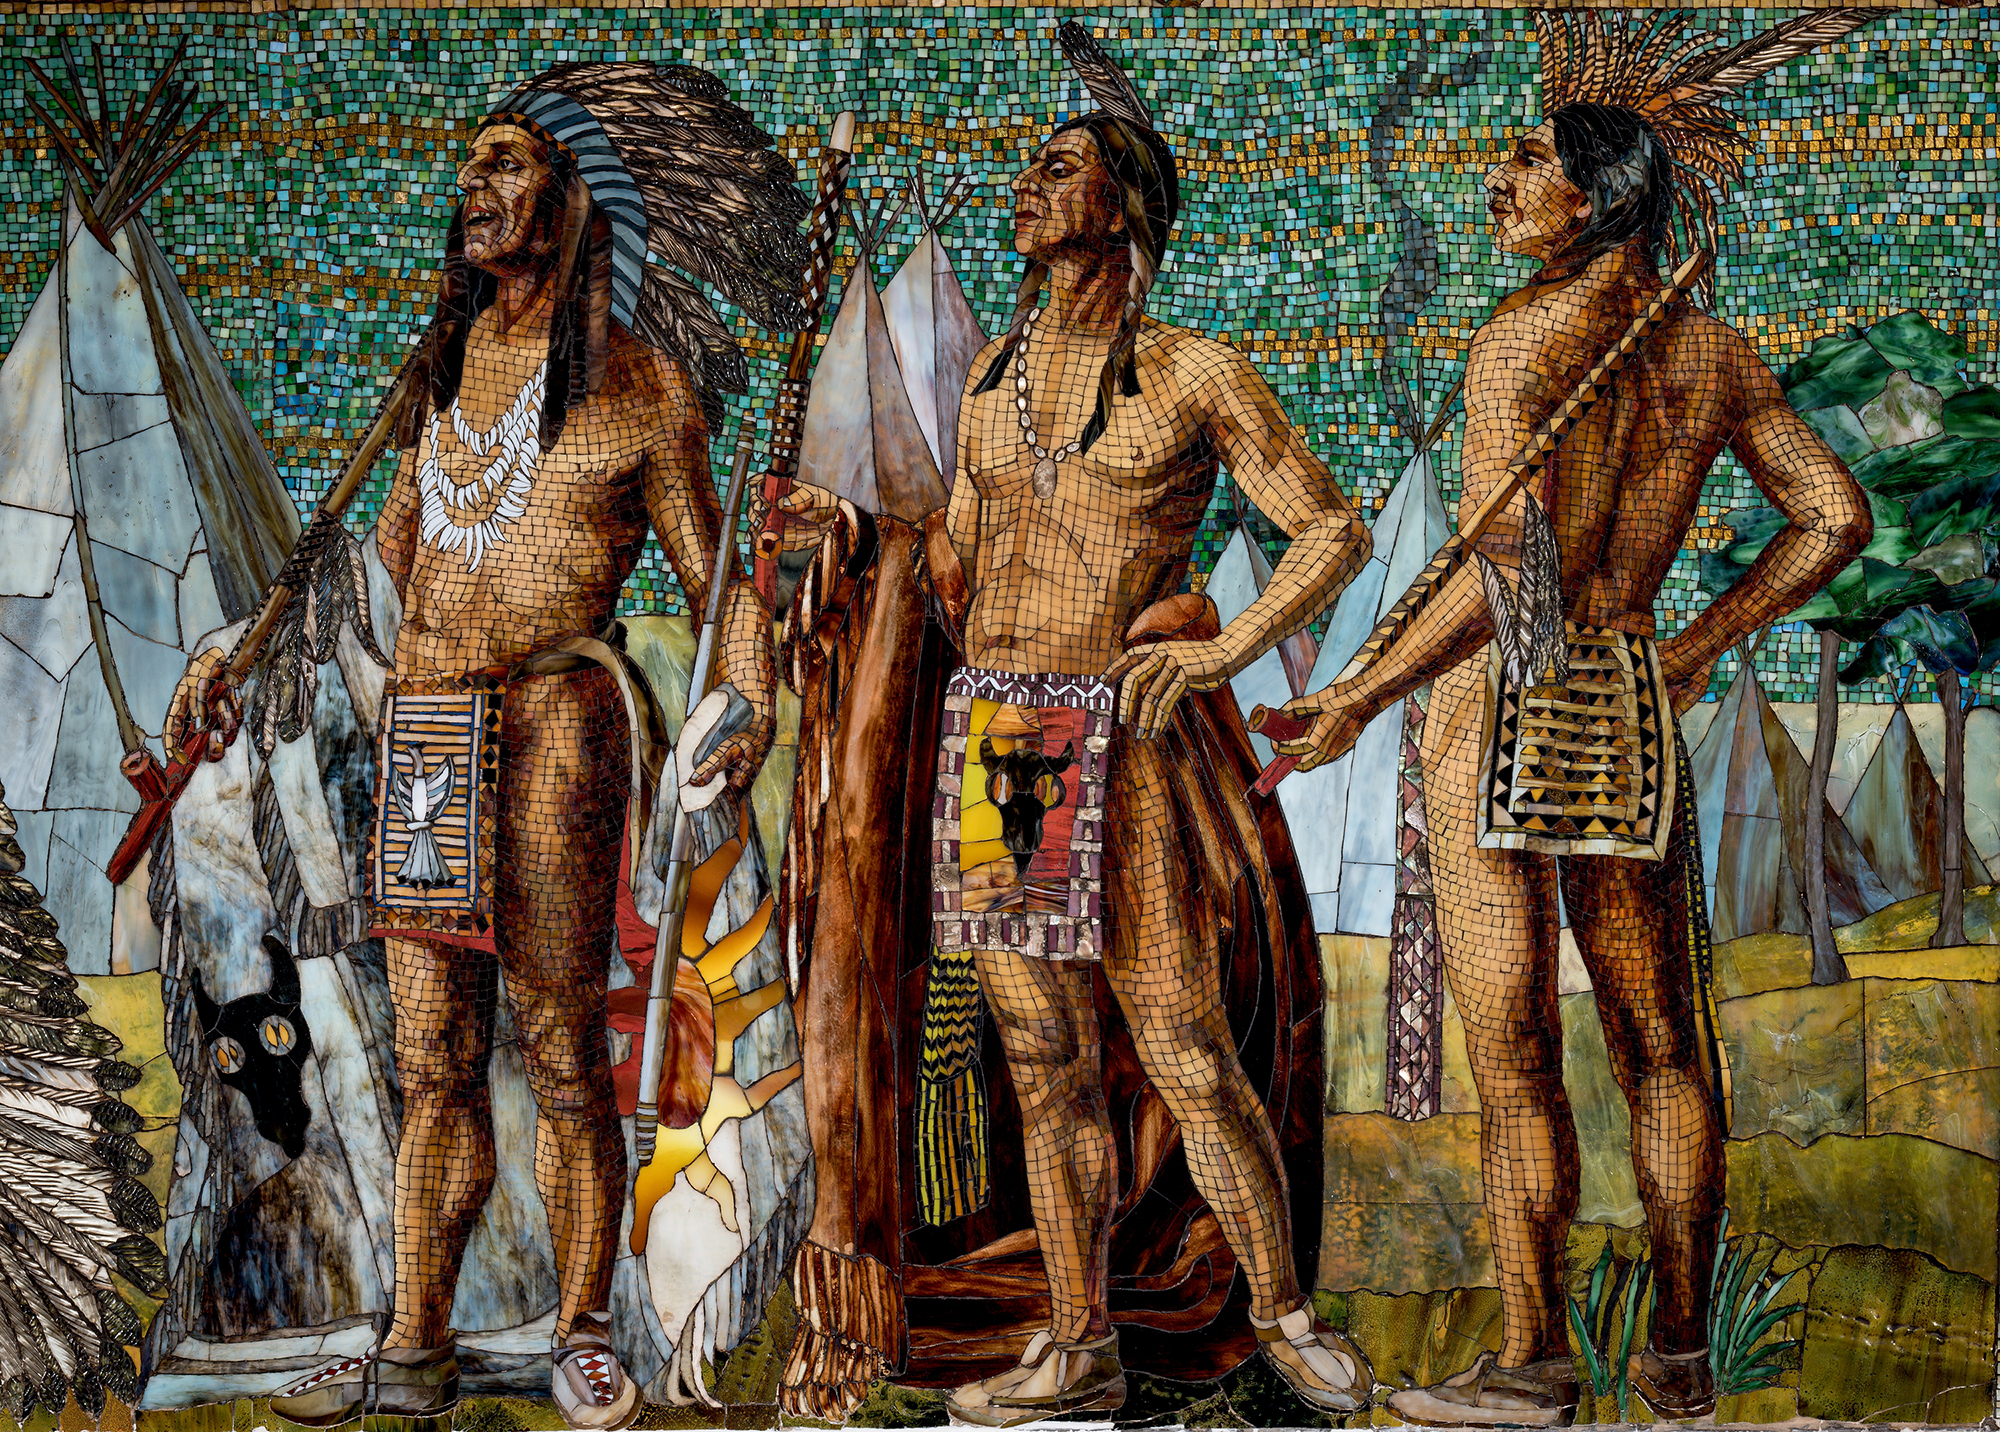 Detail of frieze, Jacques Marquette's Expedition: panel depicting Marquette and Joliet meeting with members of the Illinois tribe, 1895